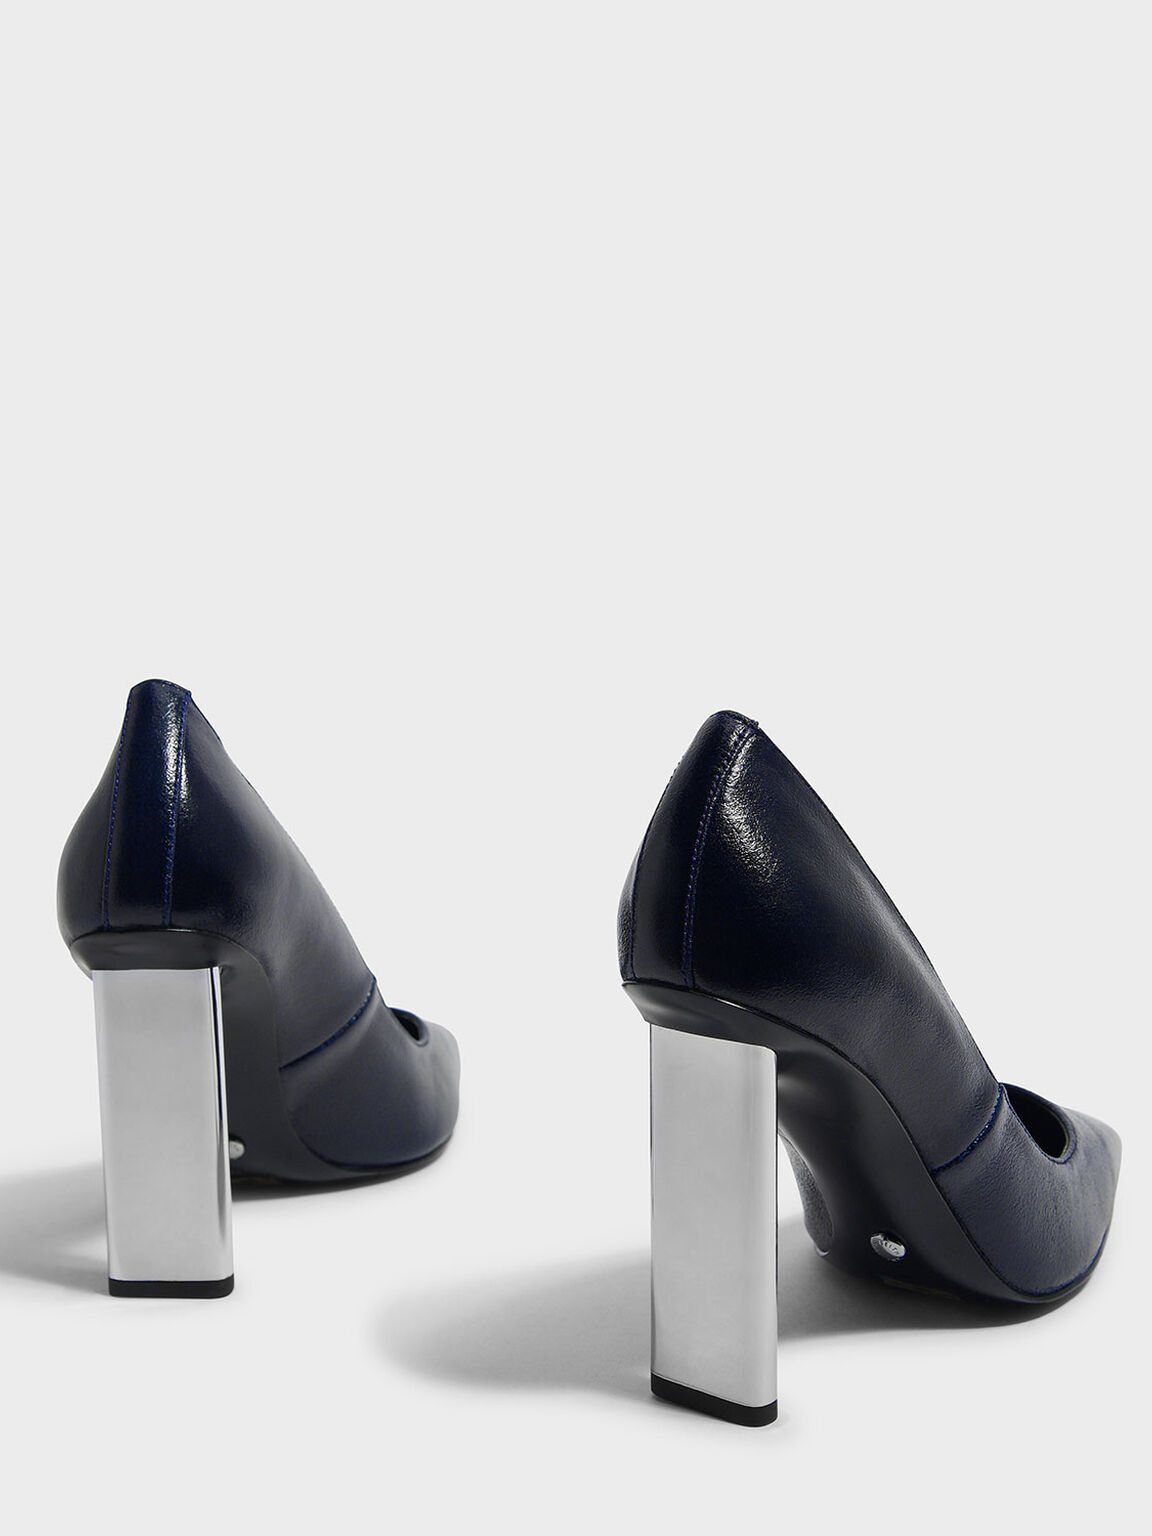 Blade Heel Leather Pumps, Dark Blue, hi-res